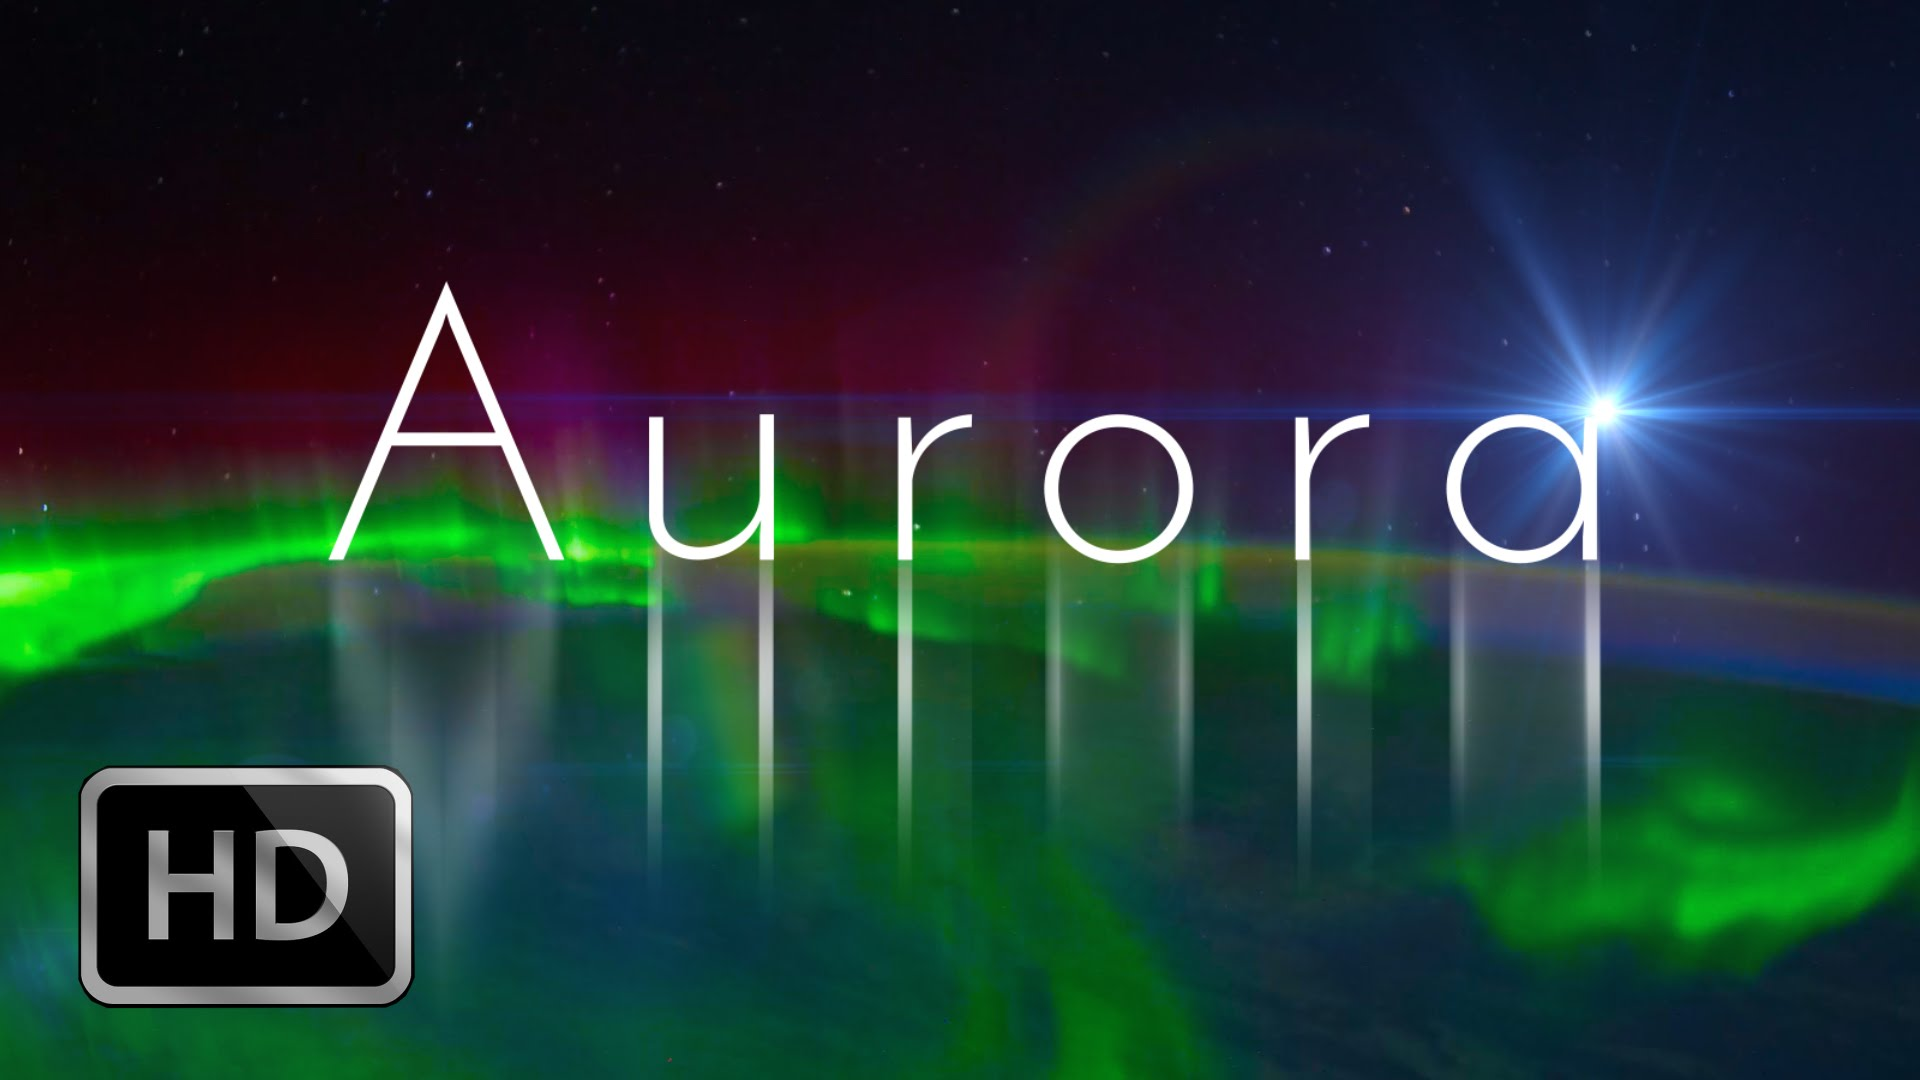 A Stunning Time-Lapse Video Showcasing Auroras as Seen From the International Space Station